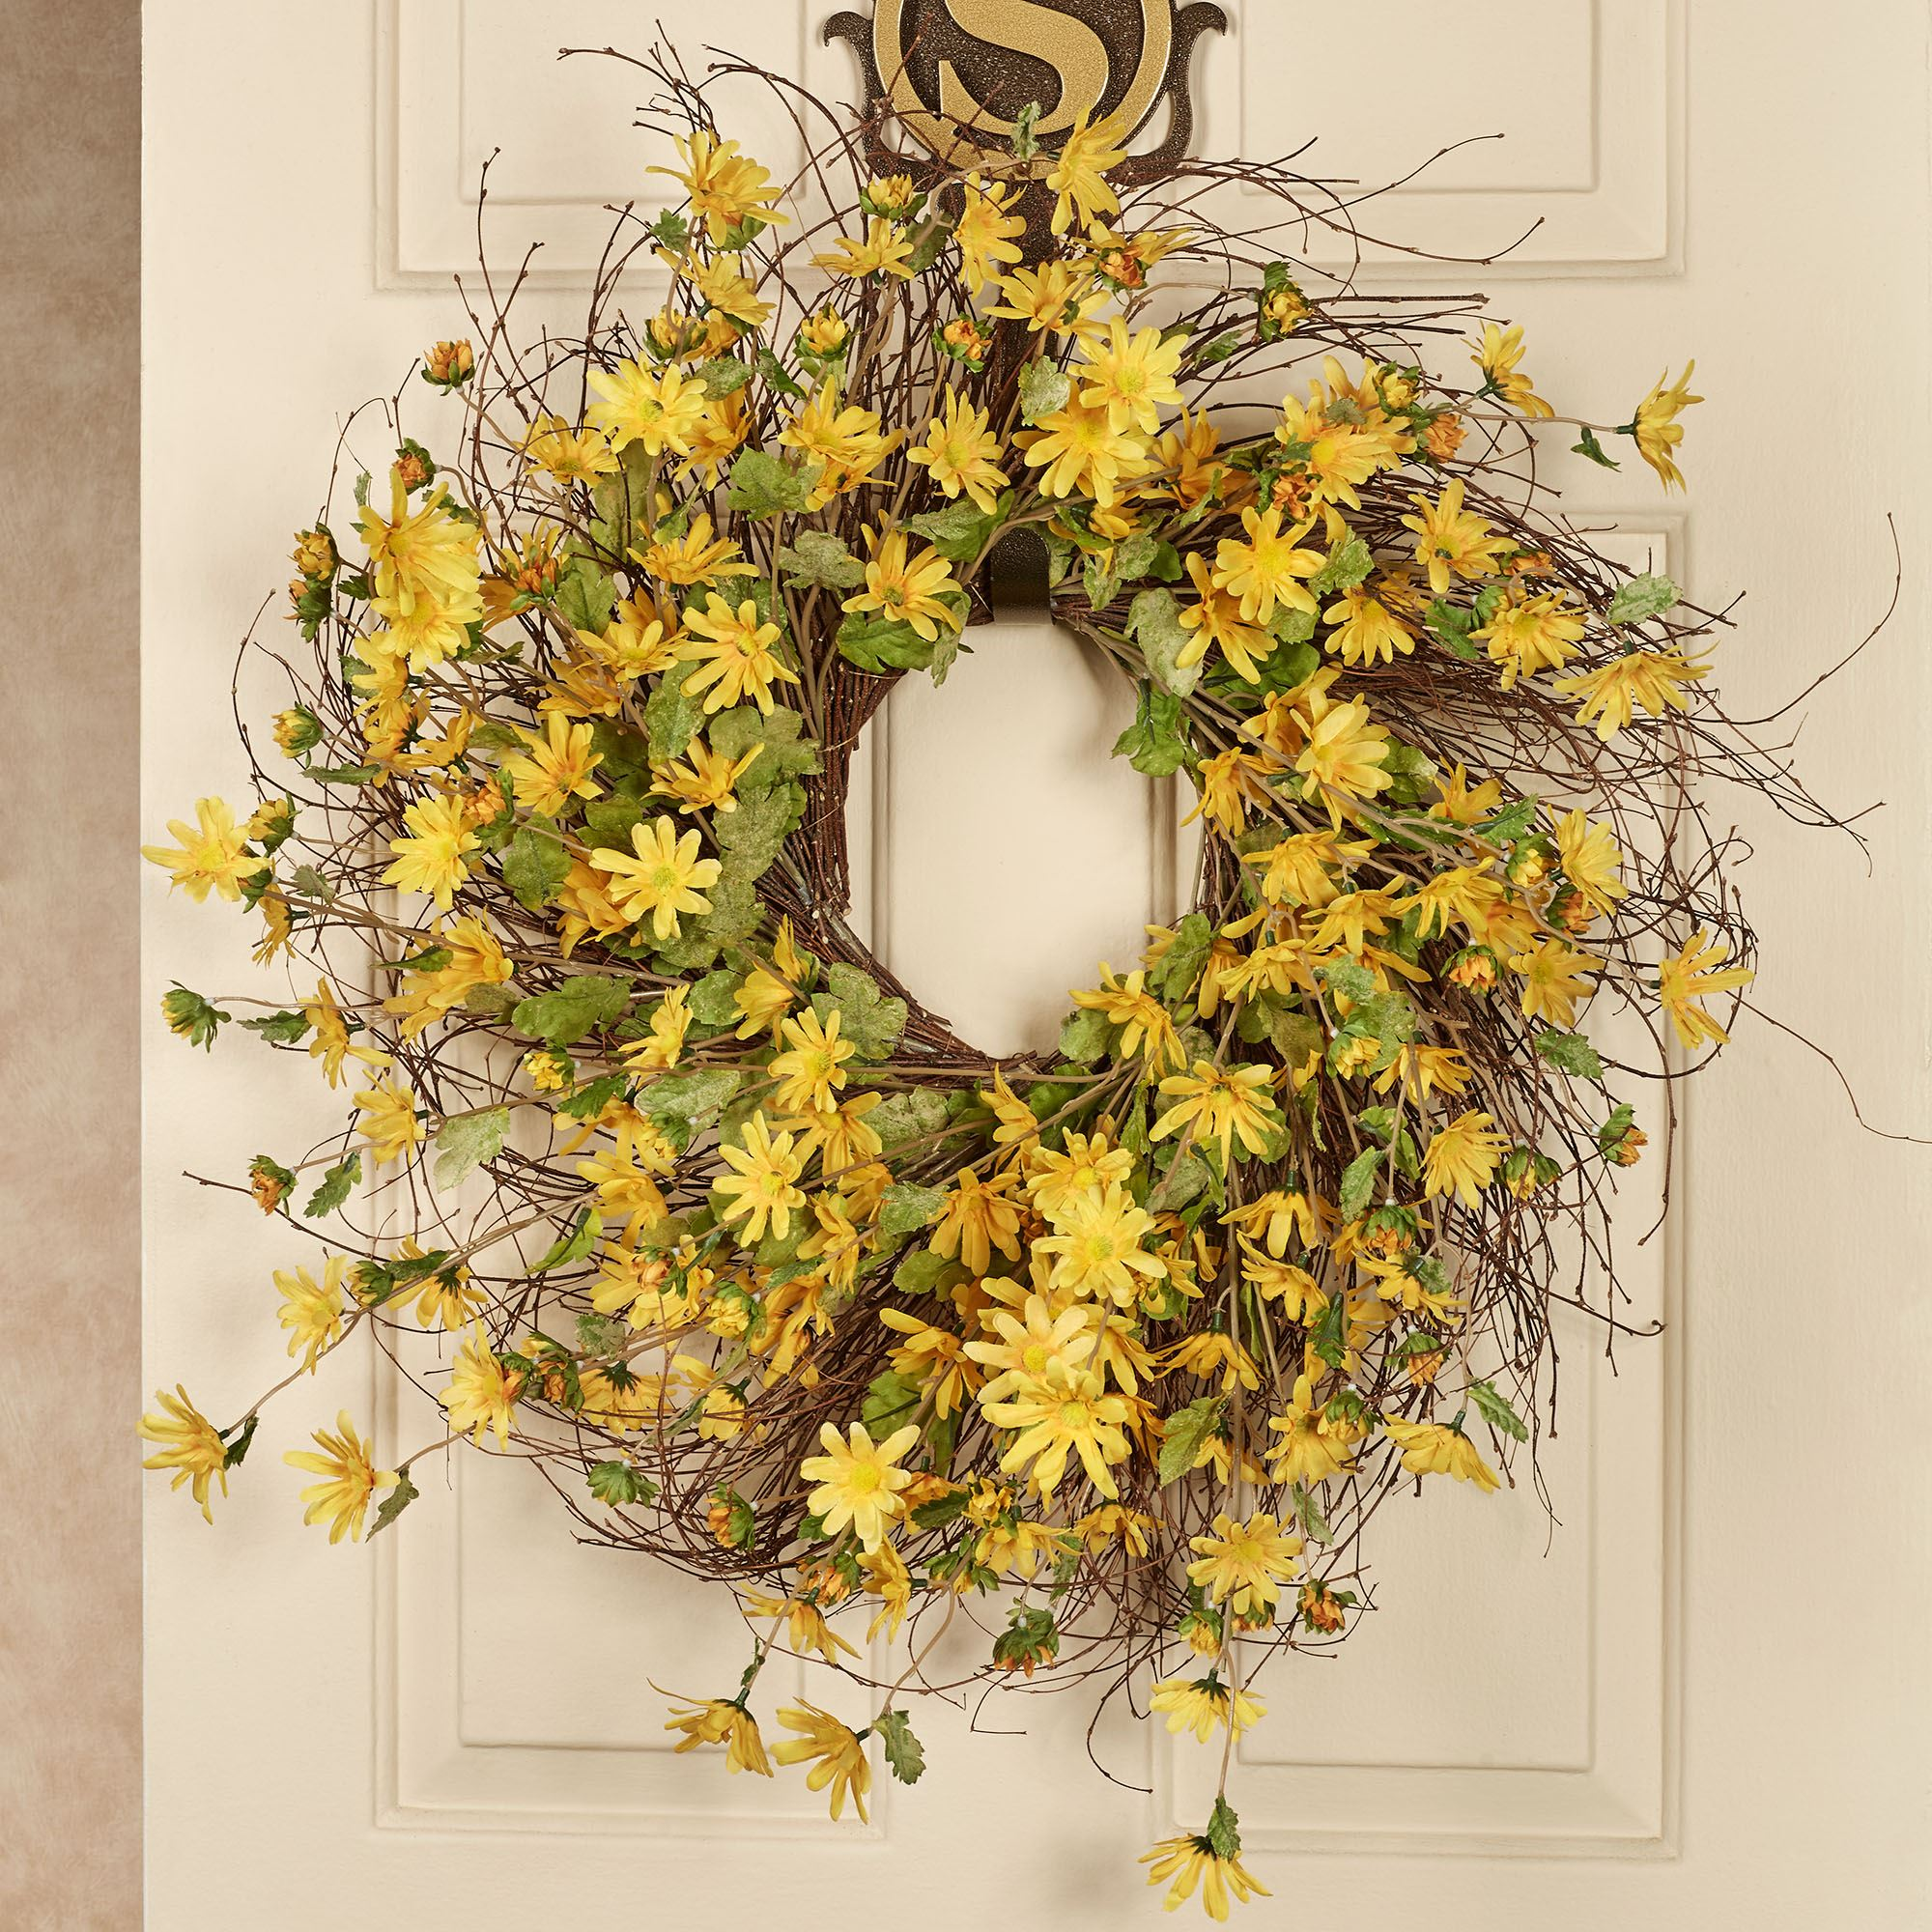 Sunshine Golden Yellow Daisy Indoor Floral Wreath